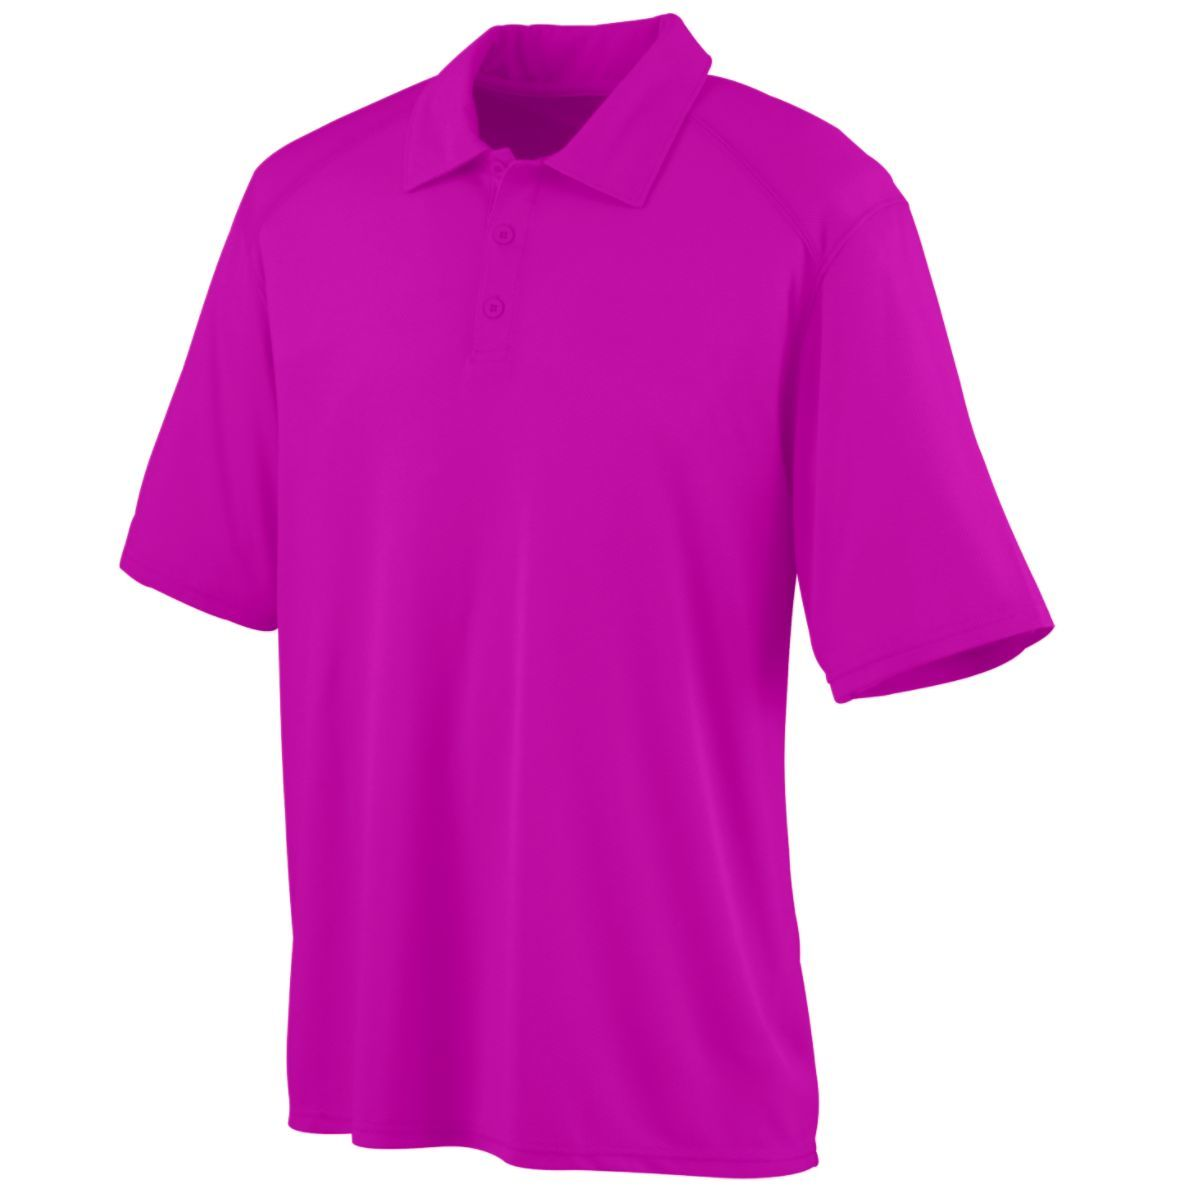 Vision Polo - POWER PINK